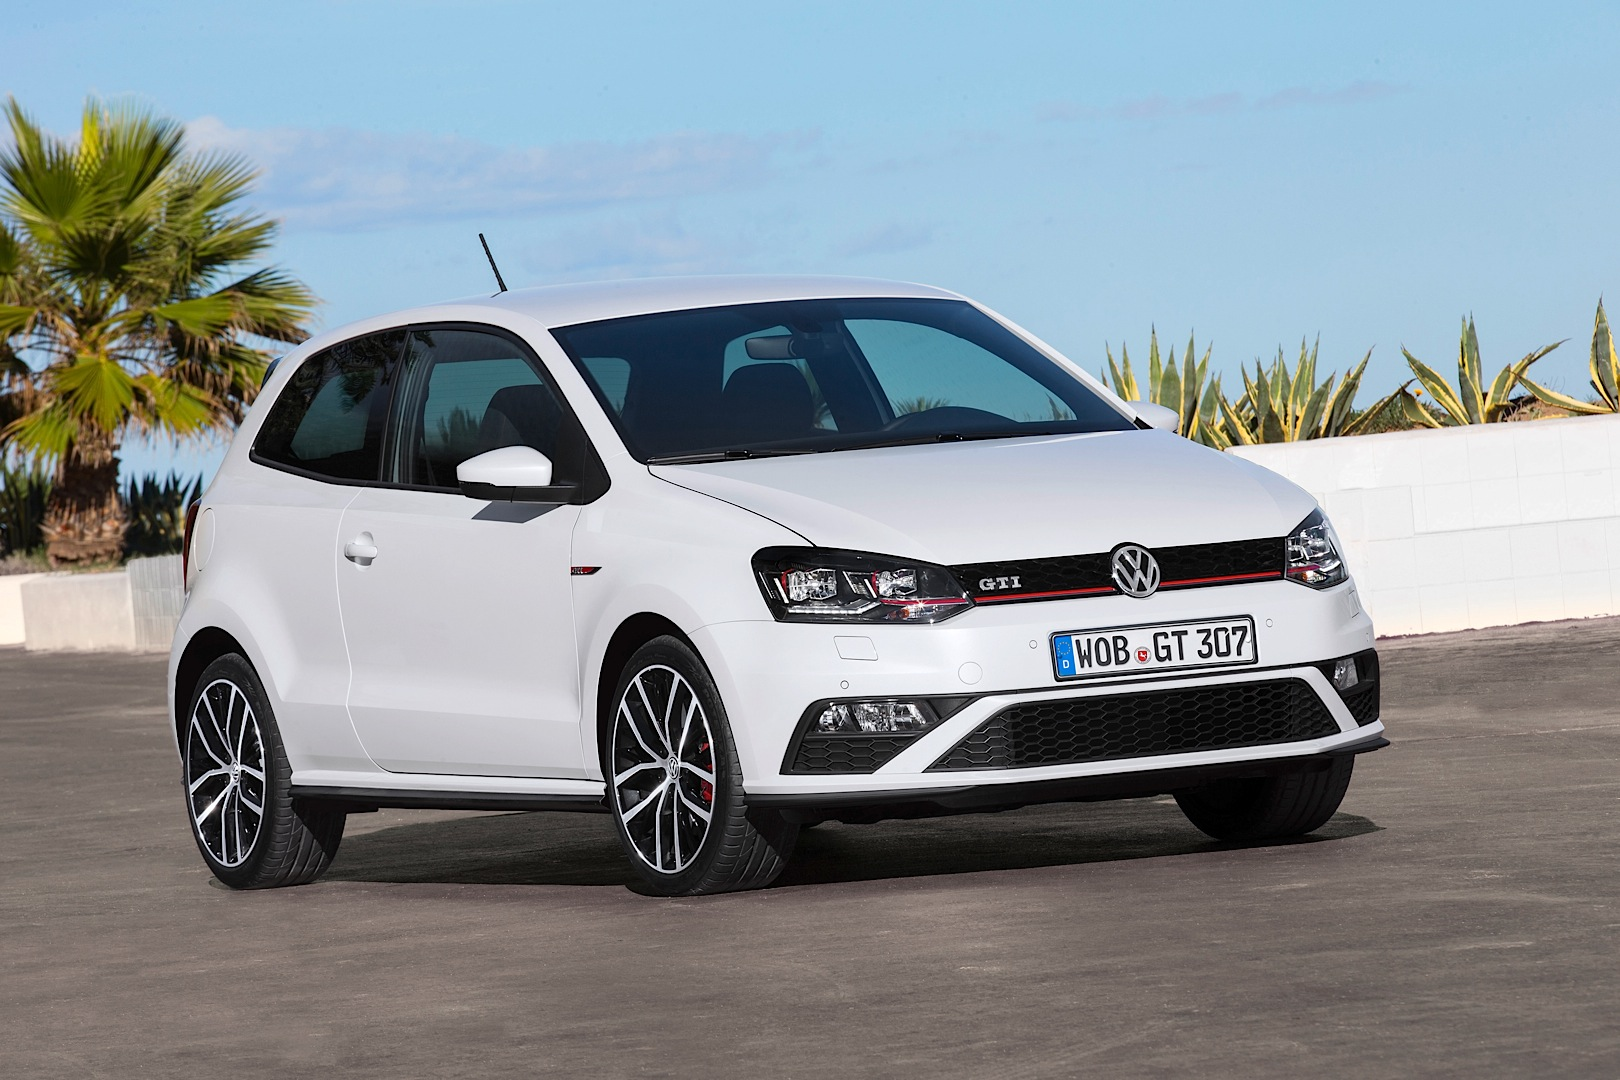 2015 volkswagen polo gti 6r facelift new photos and. Black Bedroom Furniture Sets. Home Design Ideas